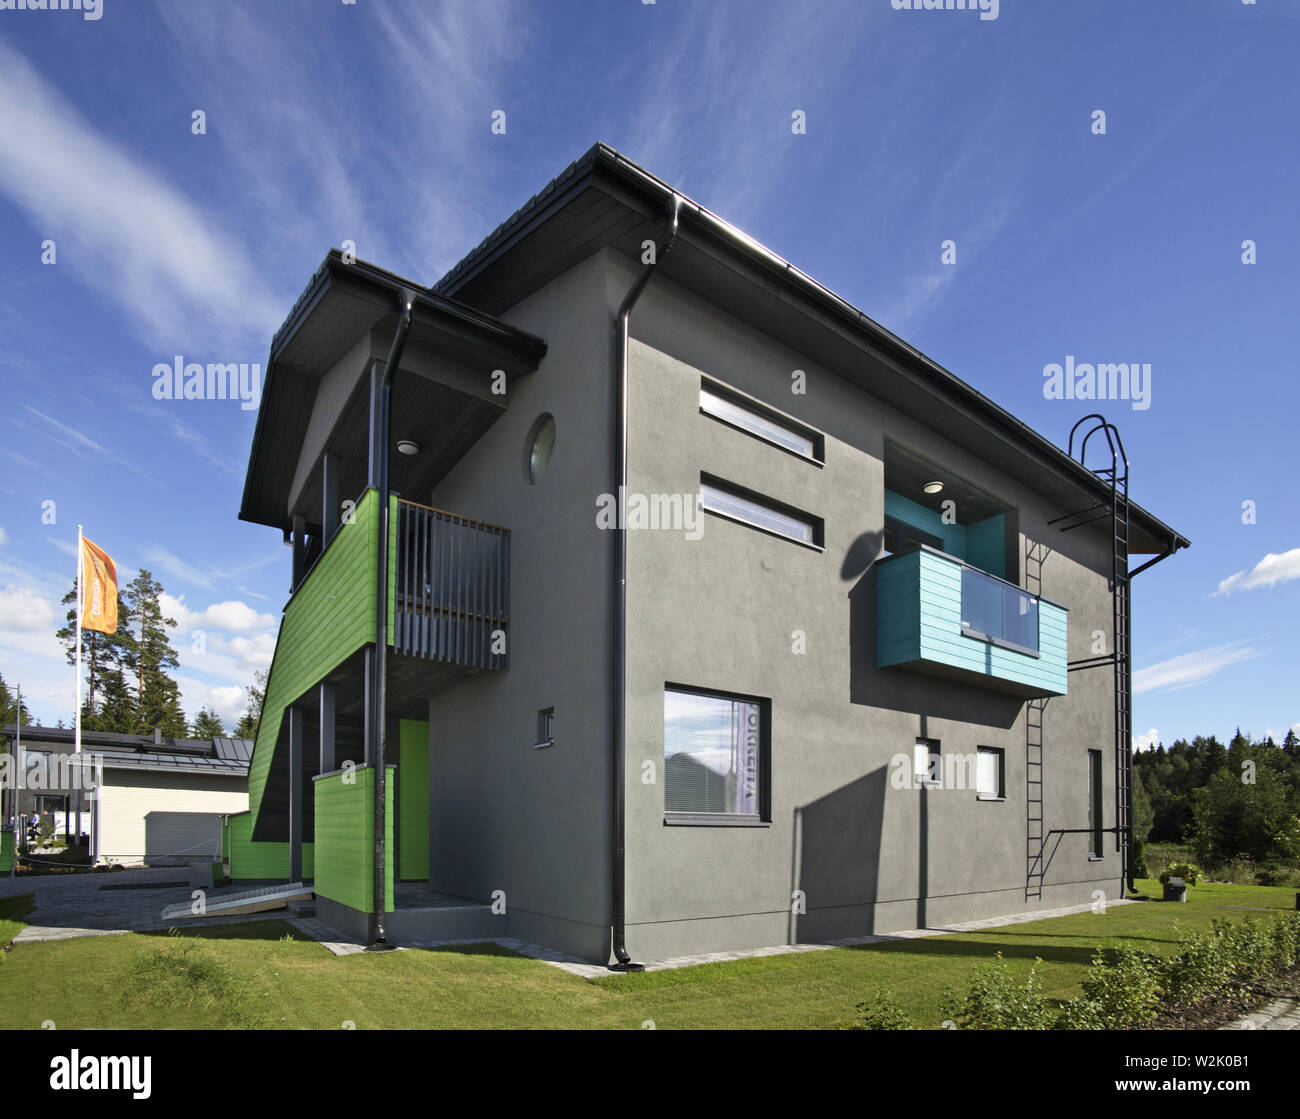 House 10 at exhibition Asuntomessut 2012 in Tampere. Finland - Stock Image